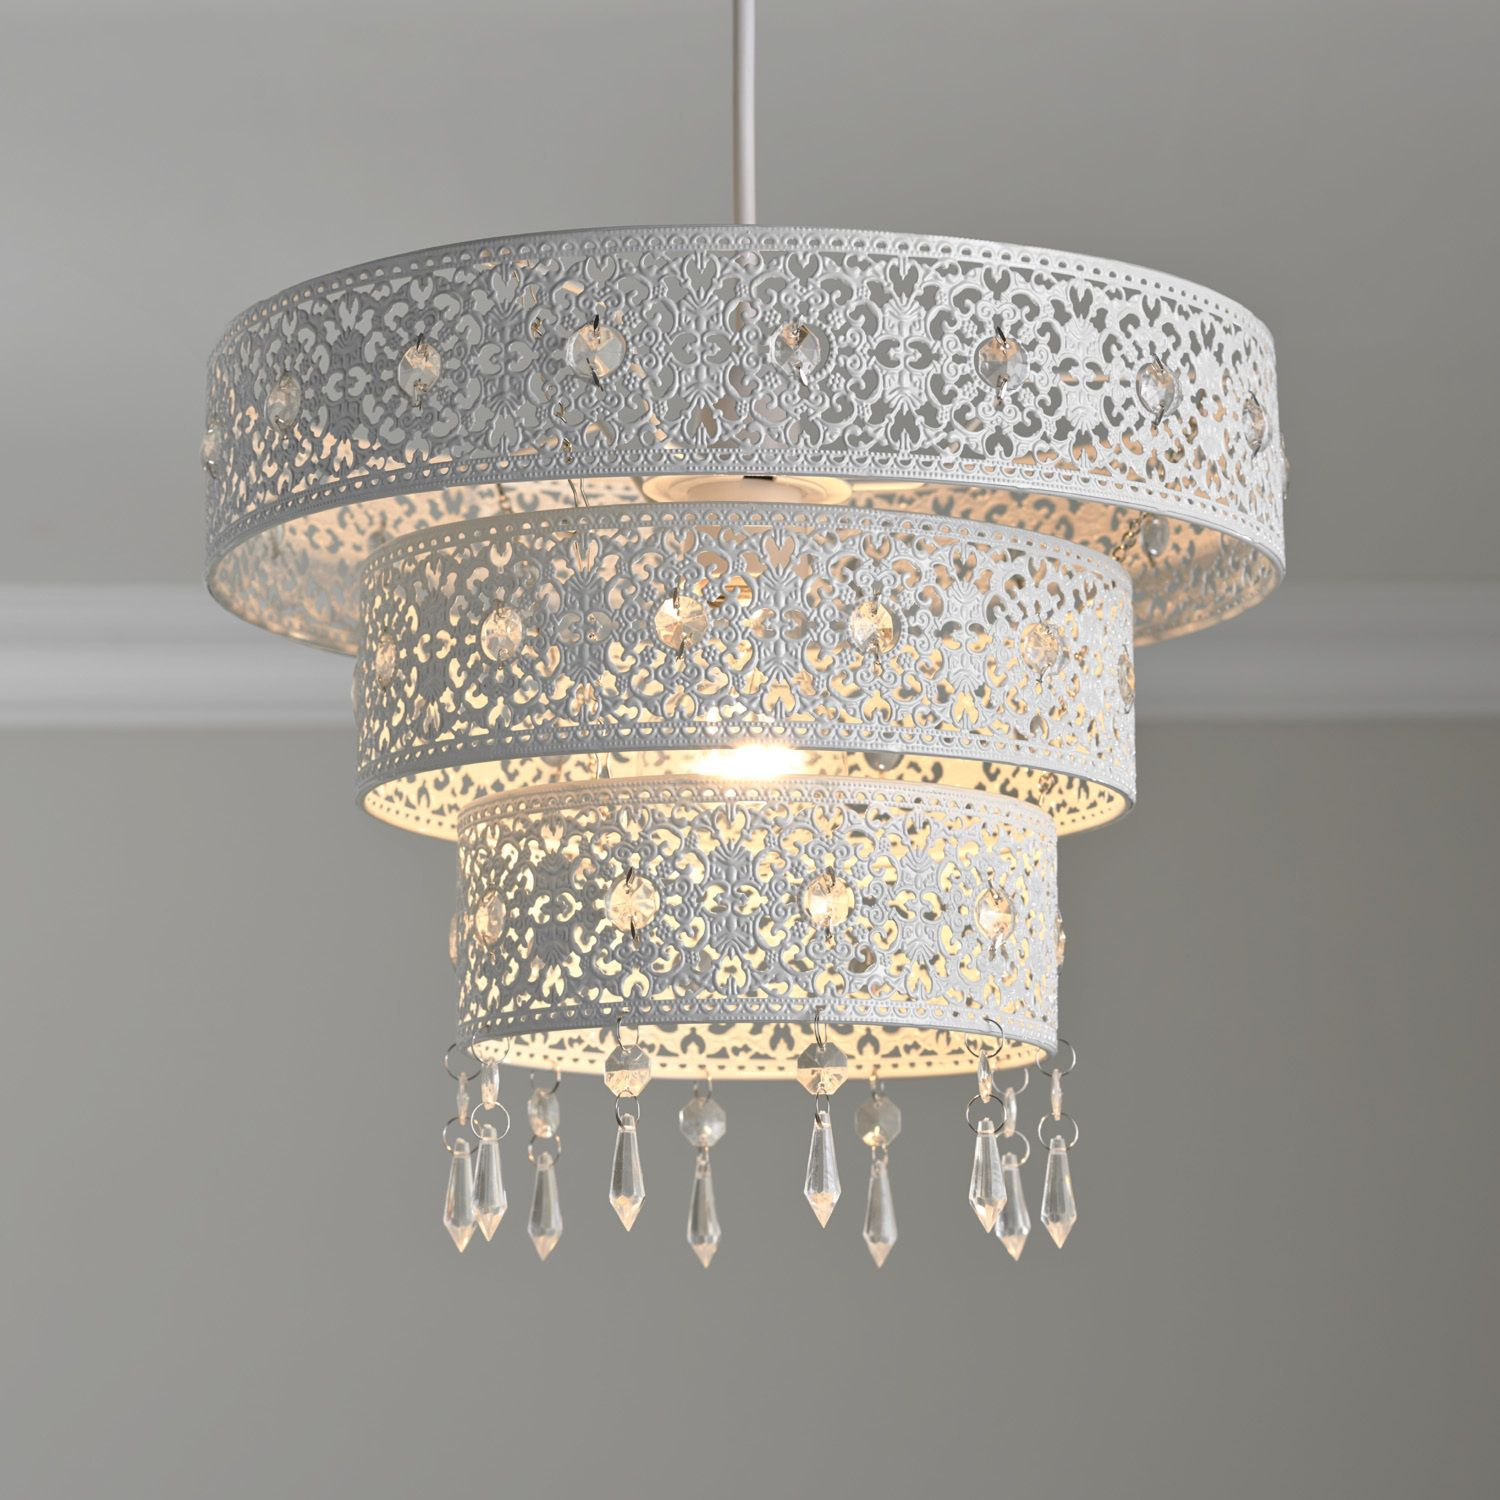 3 tier white floral cut out pendant new home pinterest ceiling 3 tier white floral cut out pendant arubaitofo Images